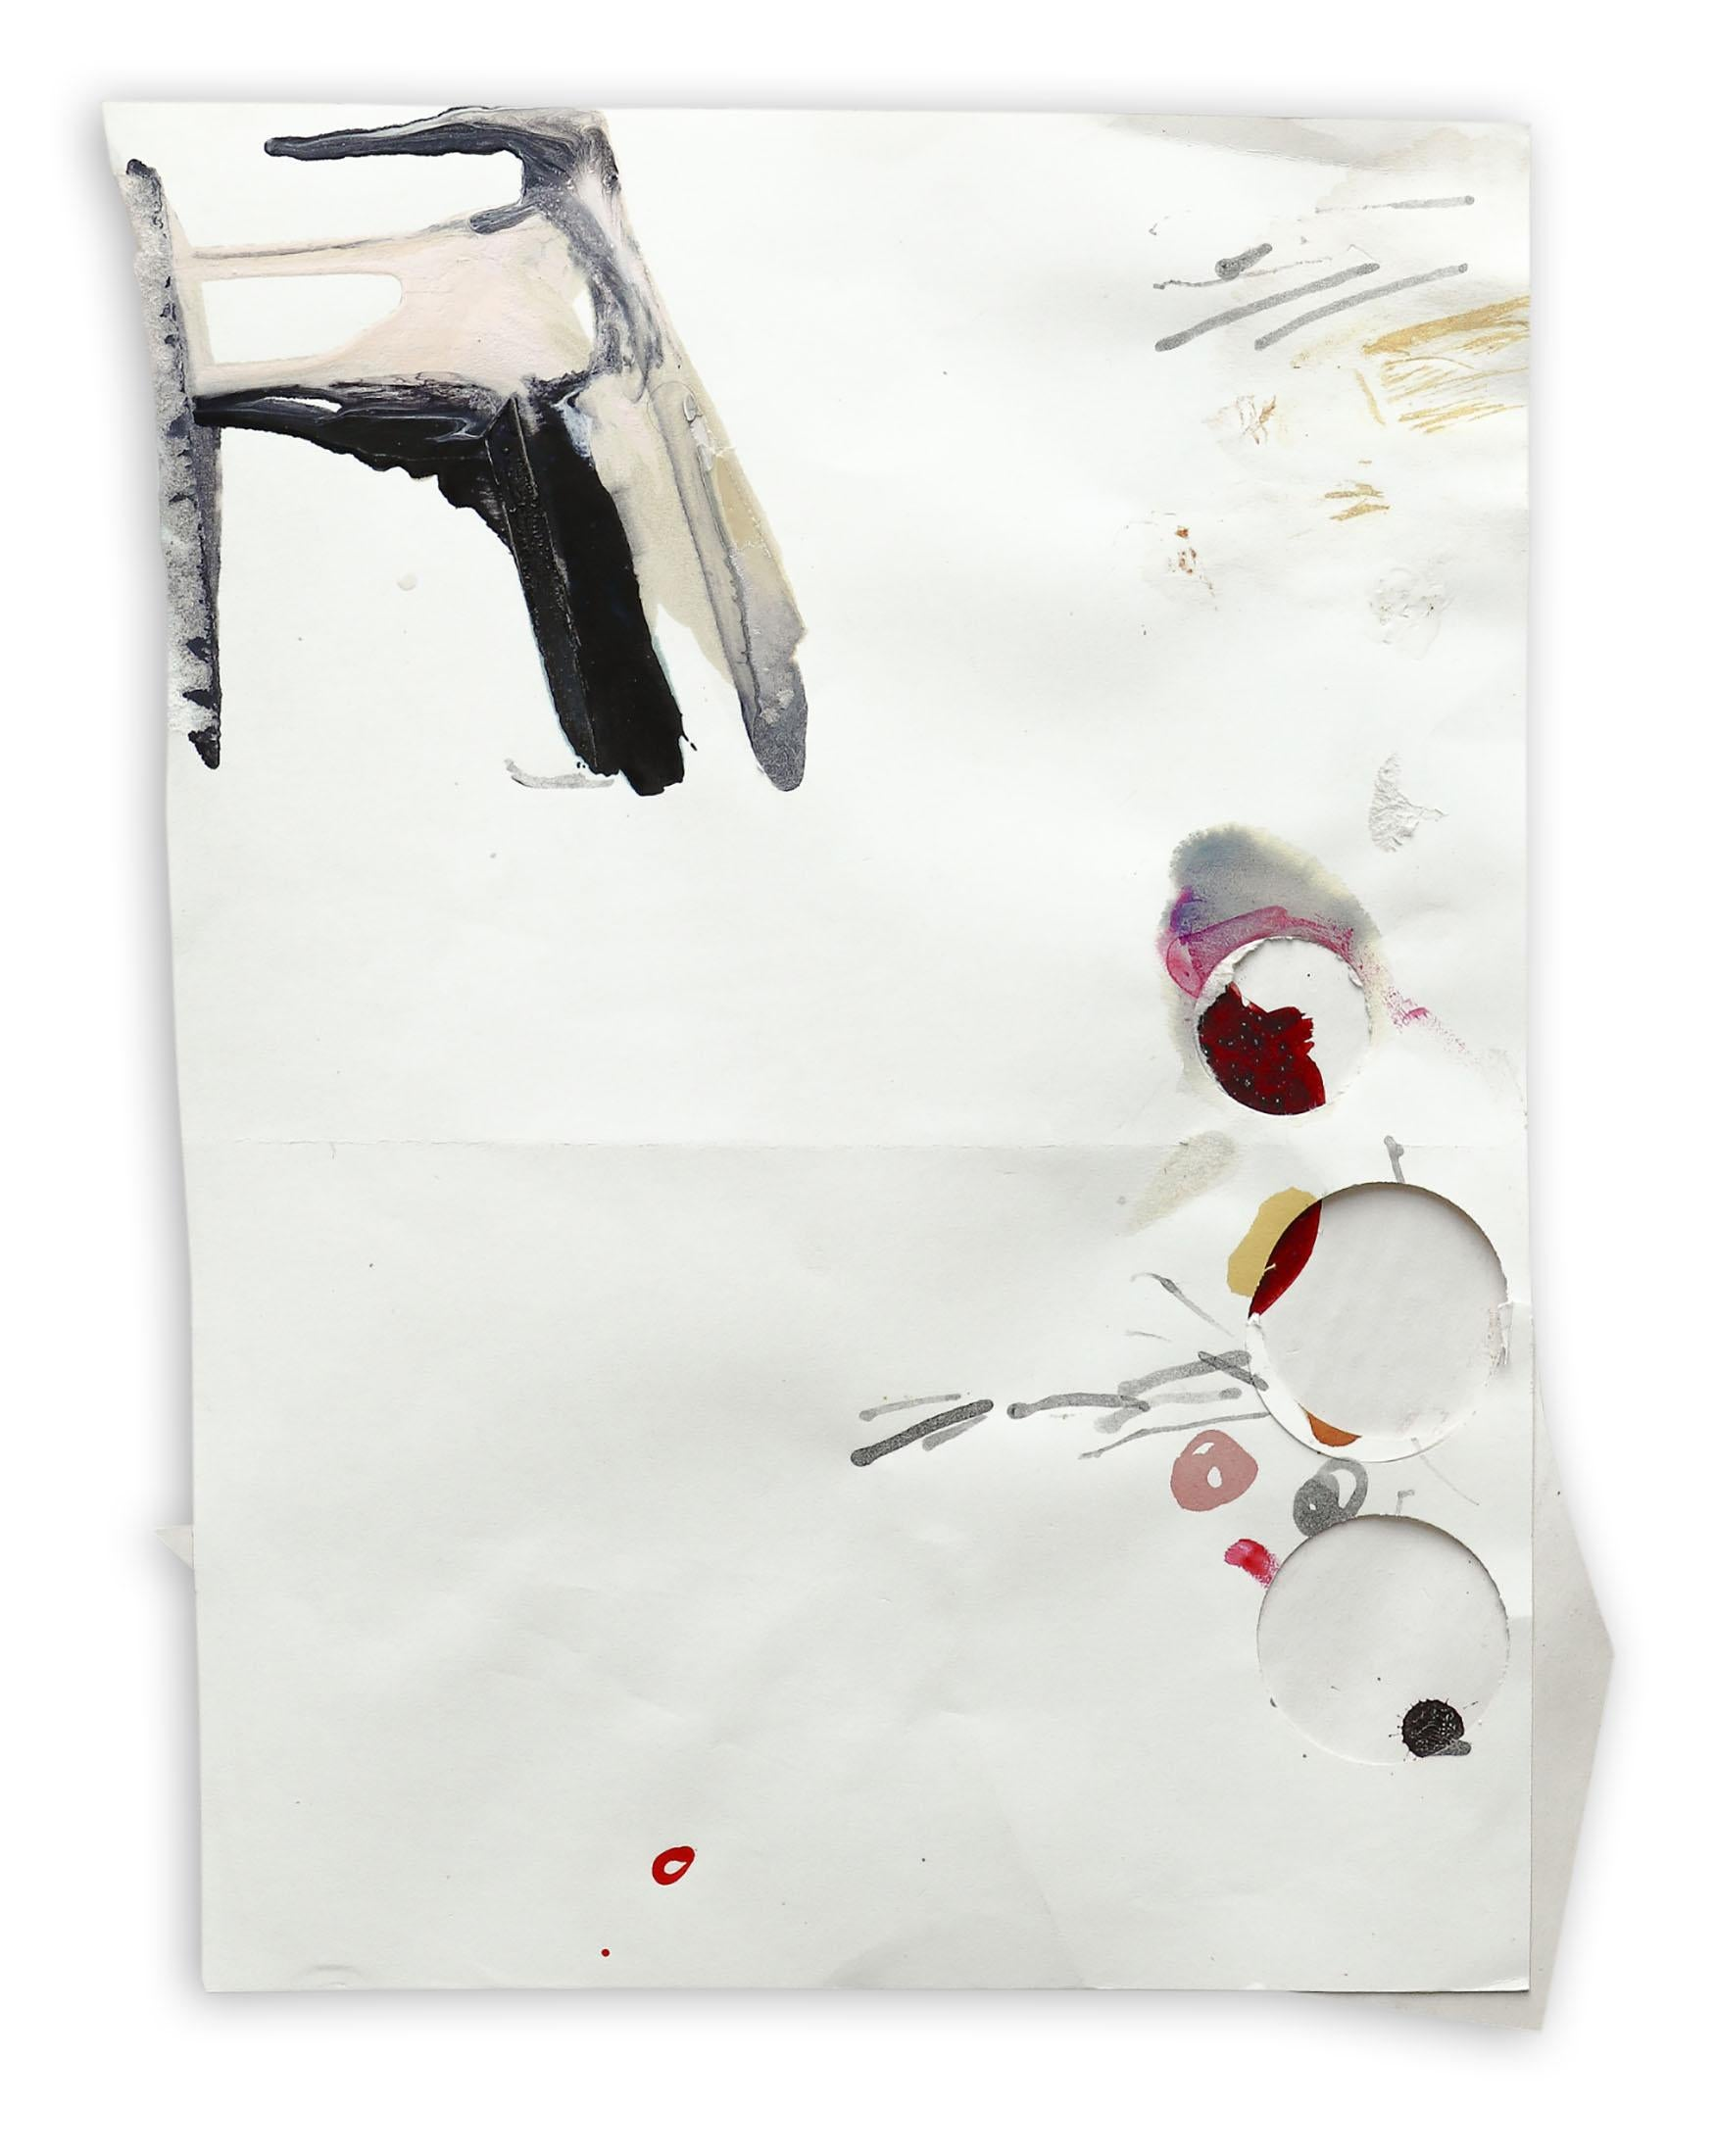 K2005 (Abstract work on paper)